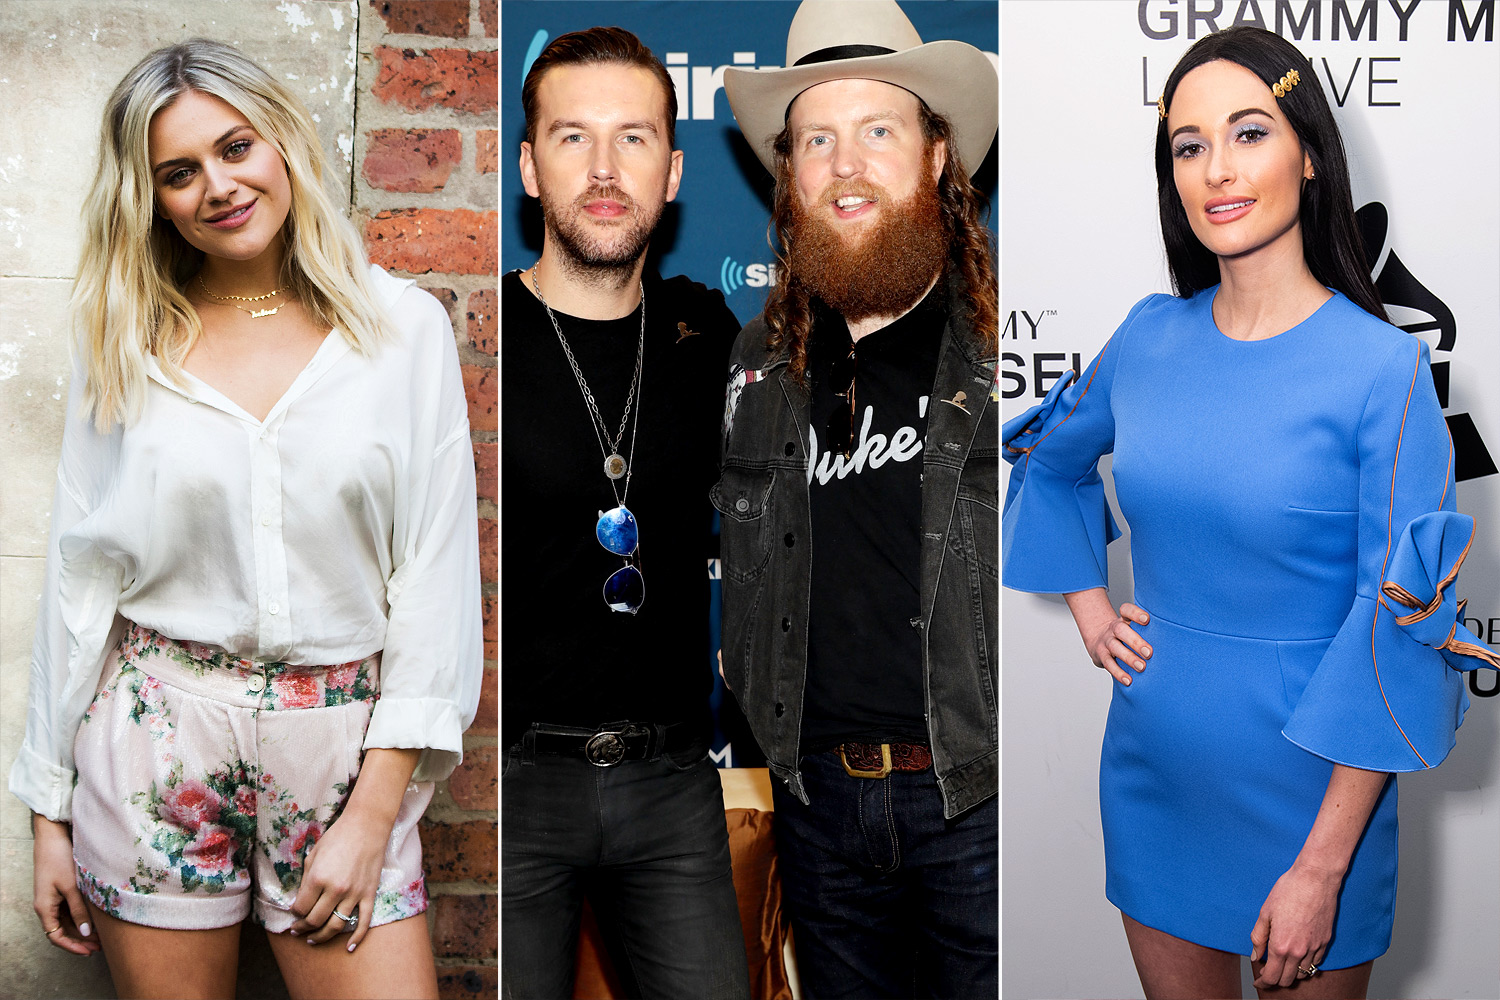 Kelsea Ballerini, The Brothers Osborne and Kacey Muscgraves